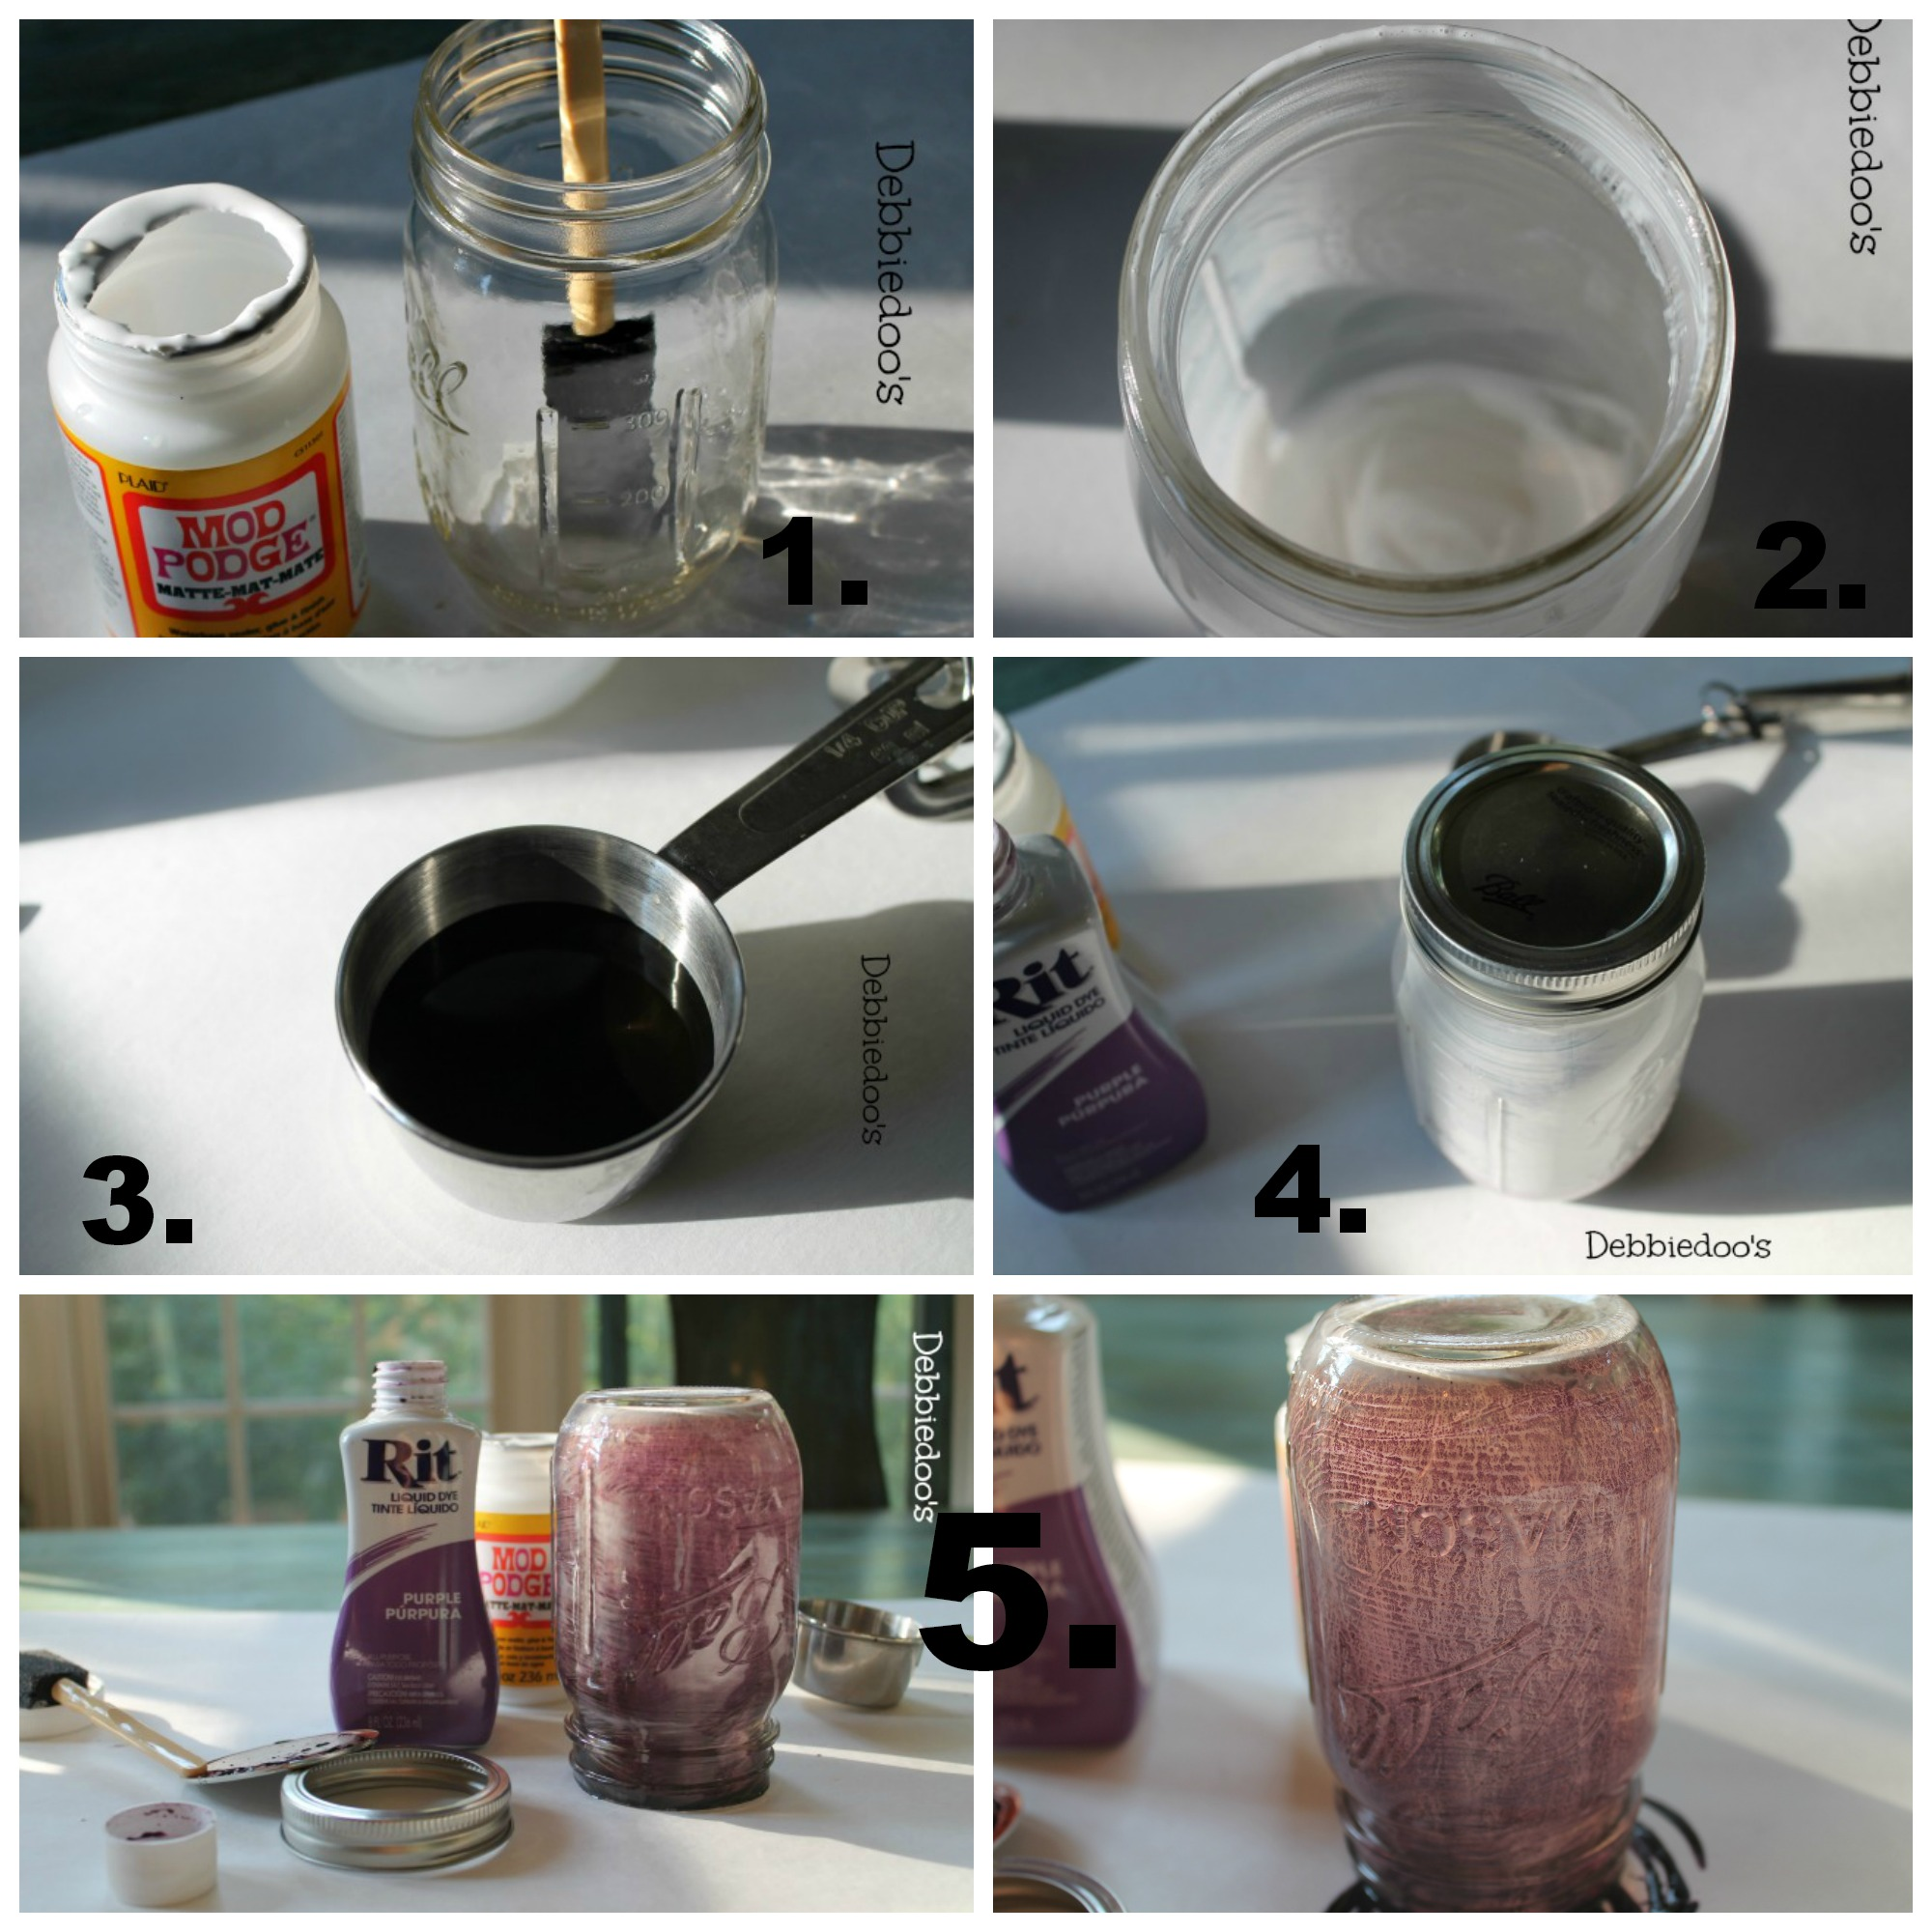 Step by step tutorial on how to inside out glass with rit dye and mod podge